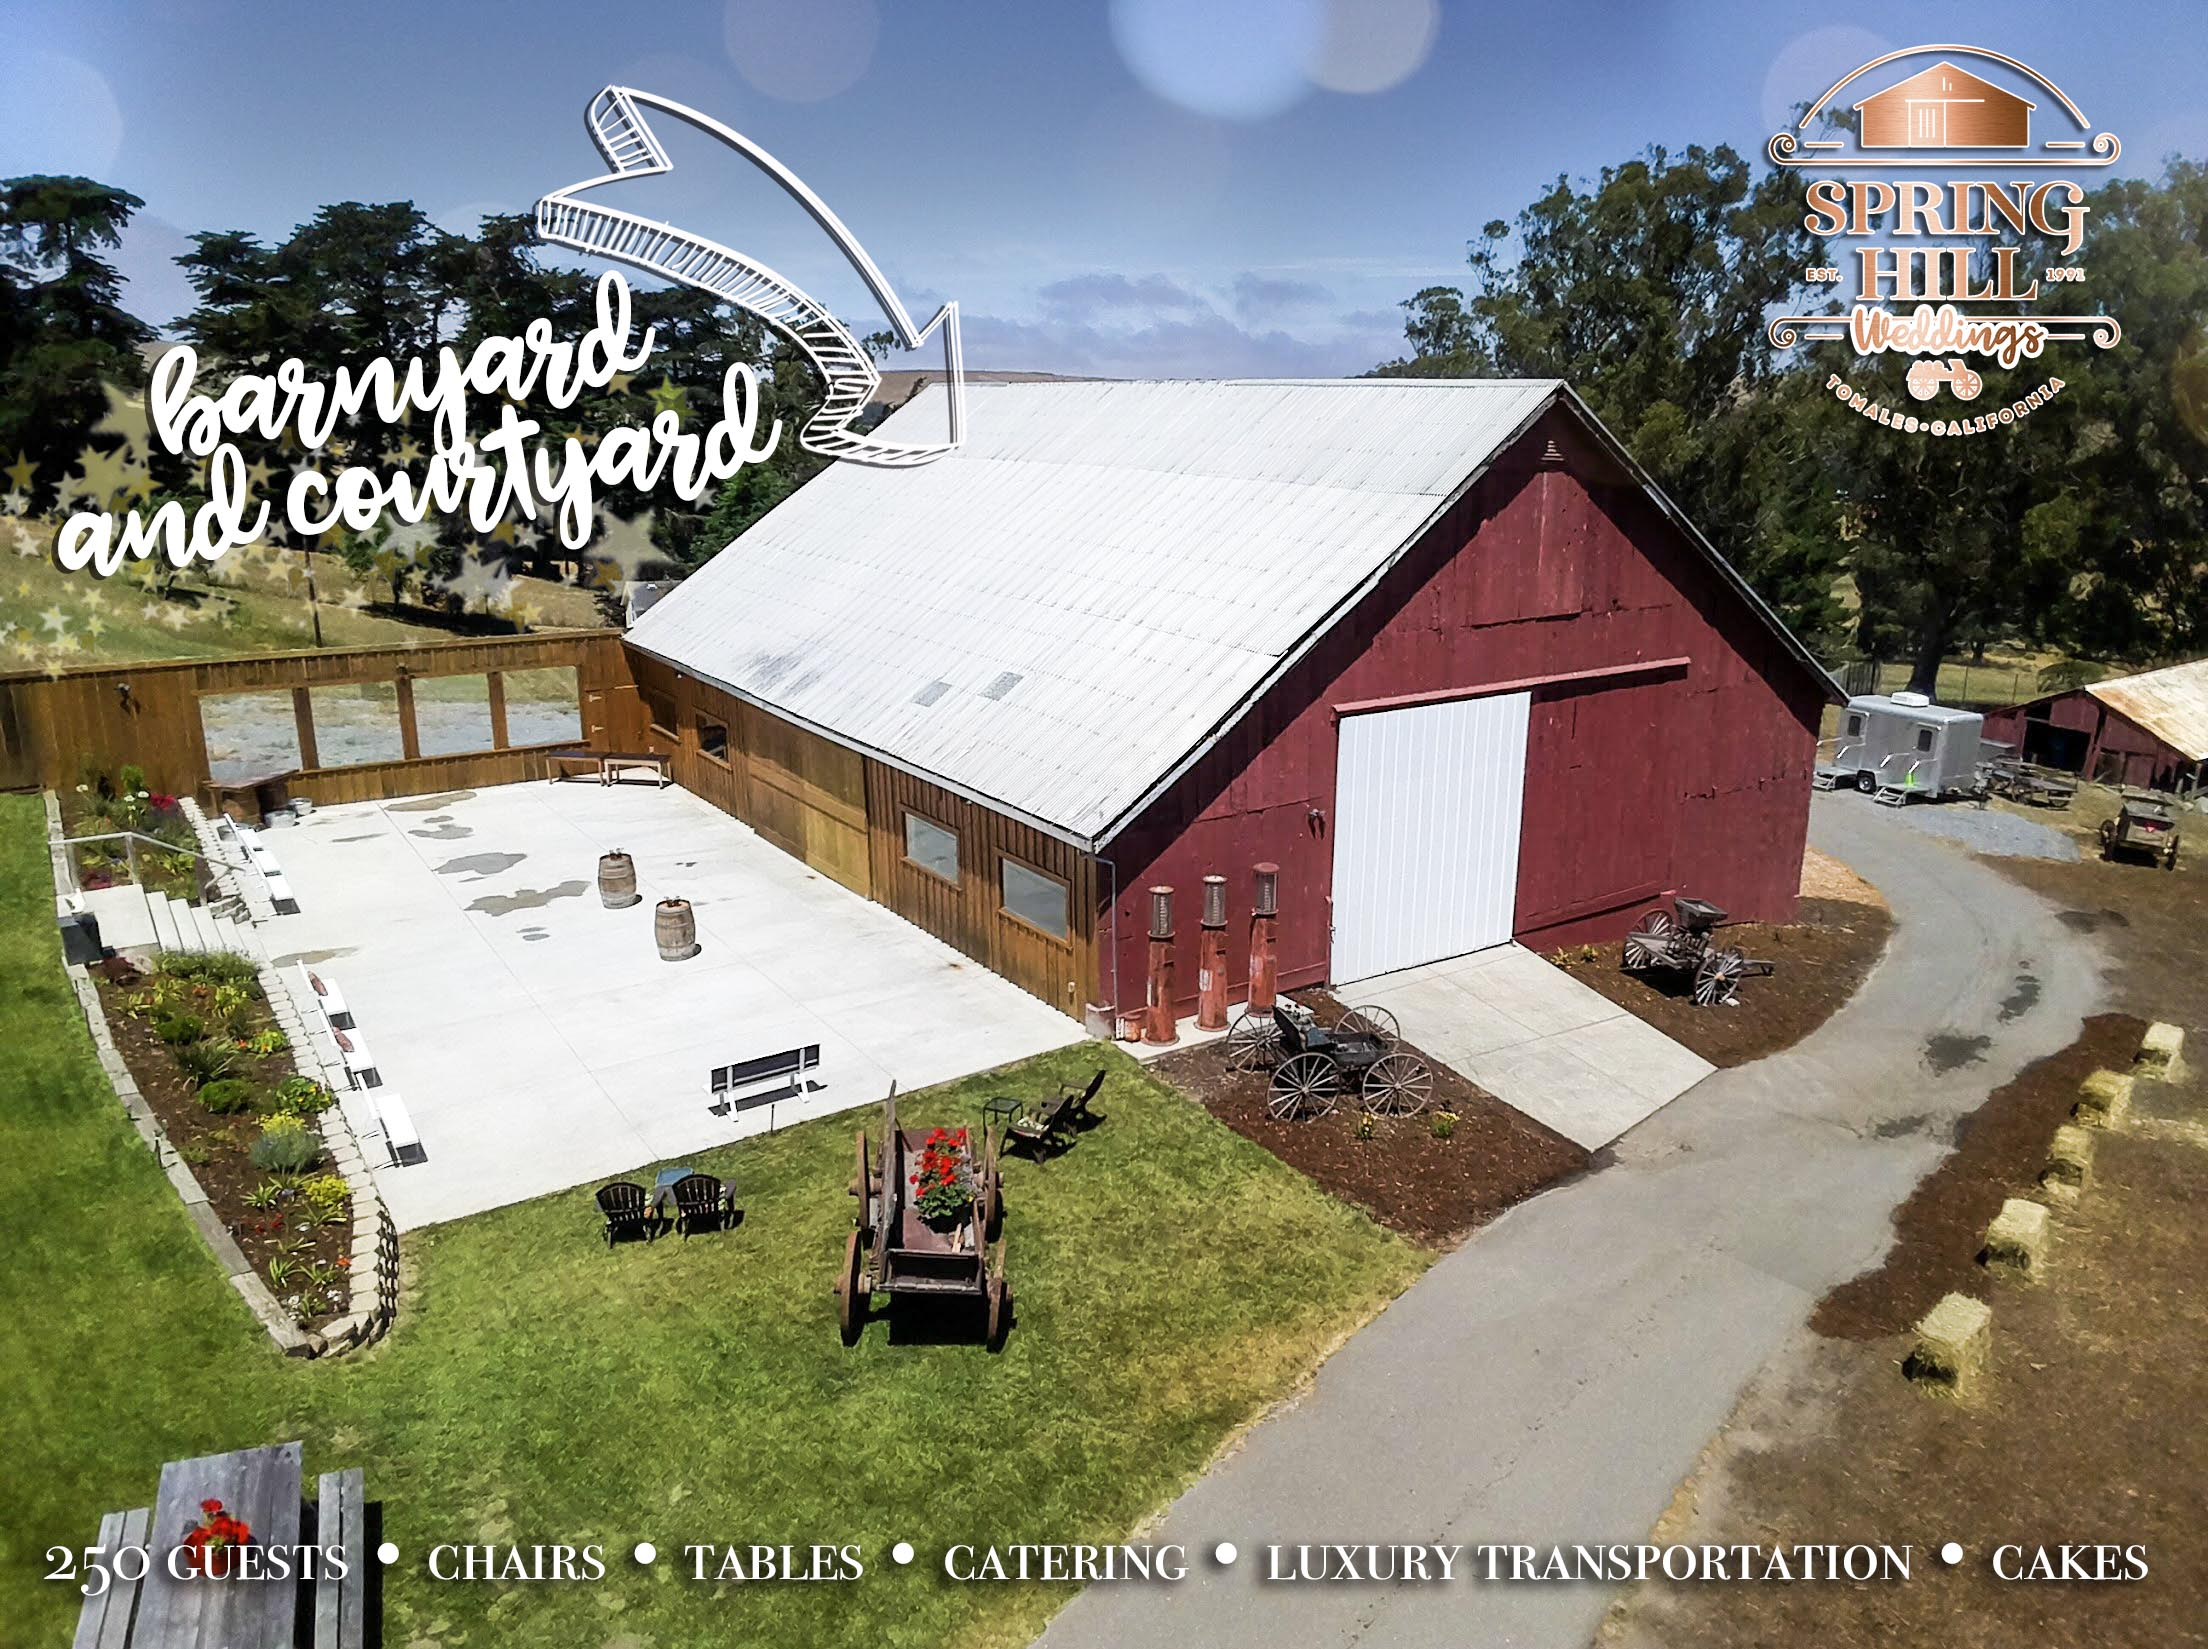 wedding_venue_luxury_barnyard_beautiful_petaluma_marin_sonoma_santa_rosa_rent_best_of CA copy.jpg